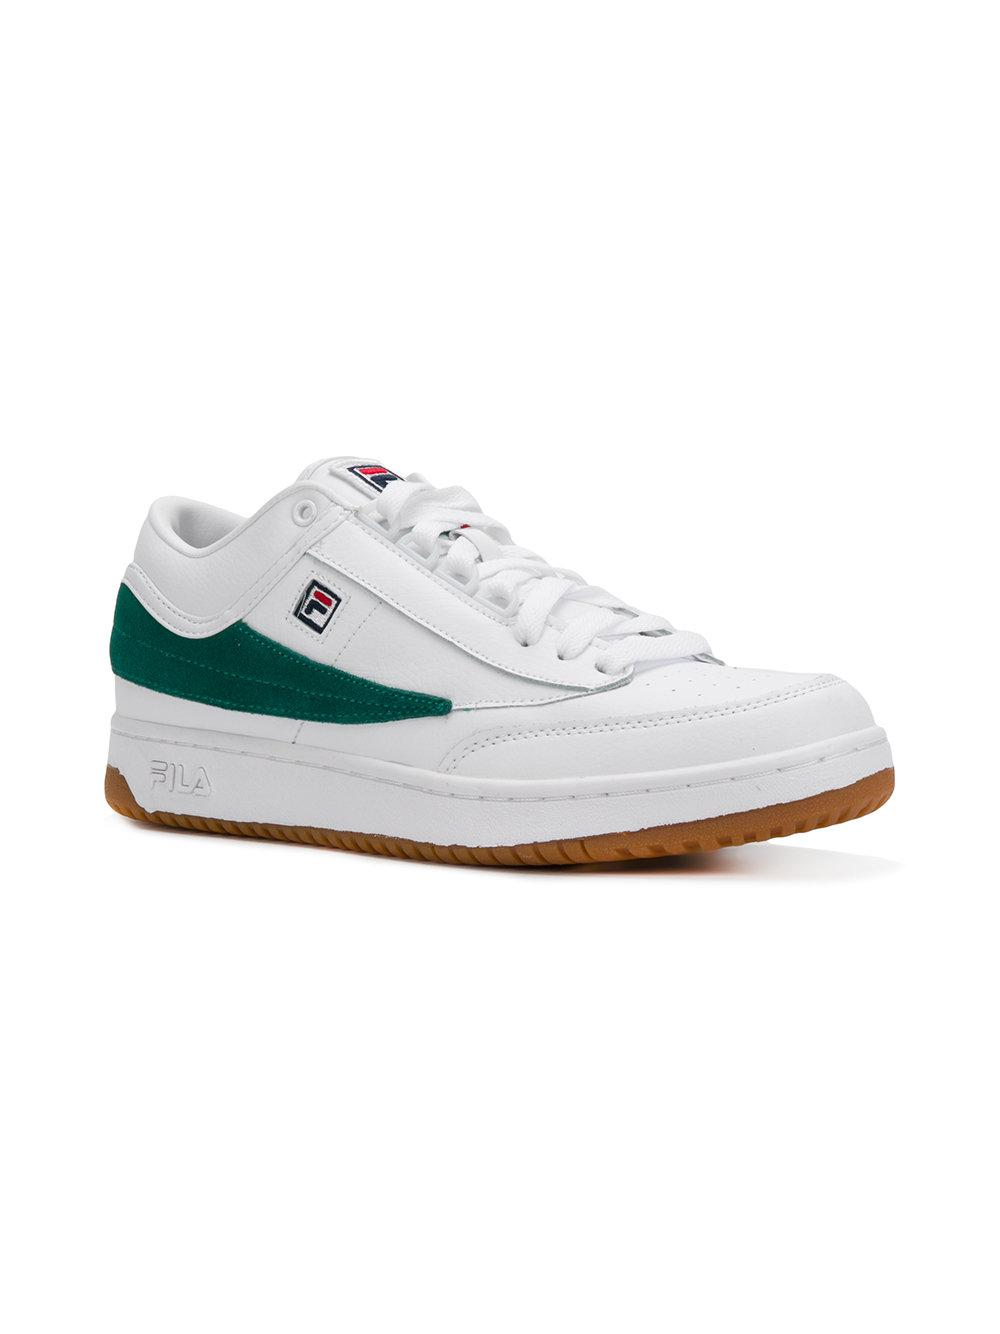 casual lace-up sneakers - White Fila Quality Free Shipping Low Price HMCHlQd